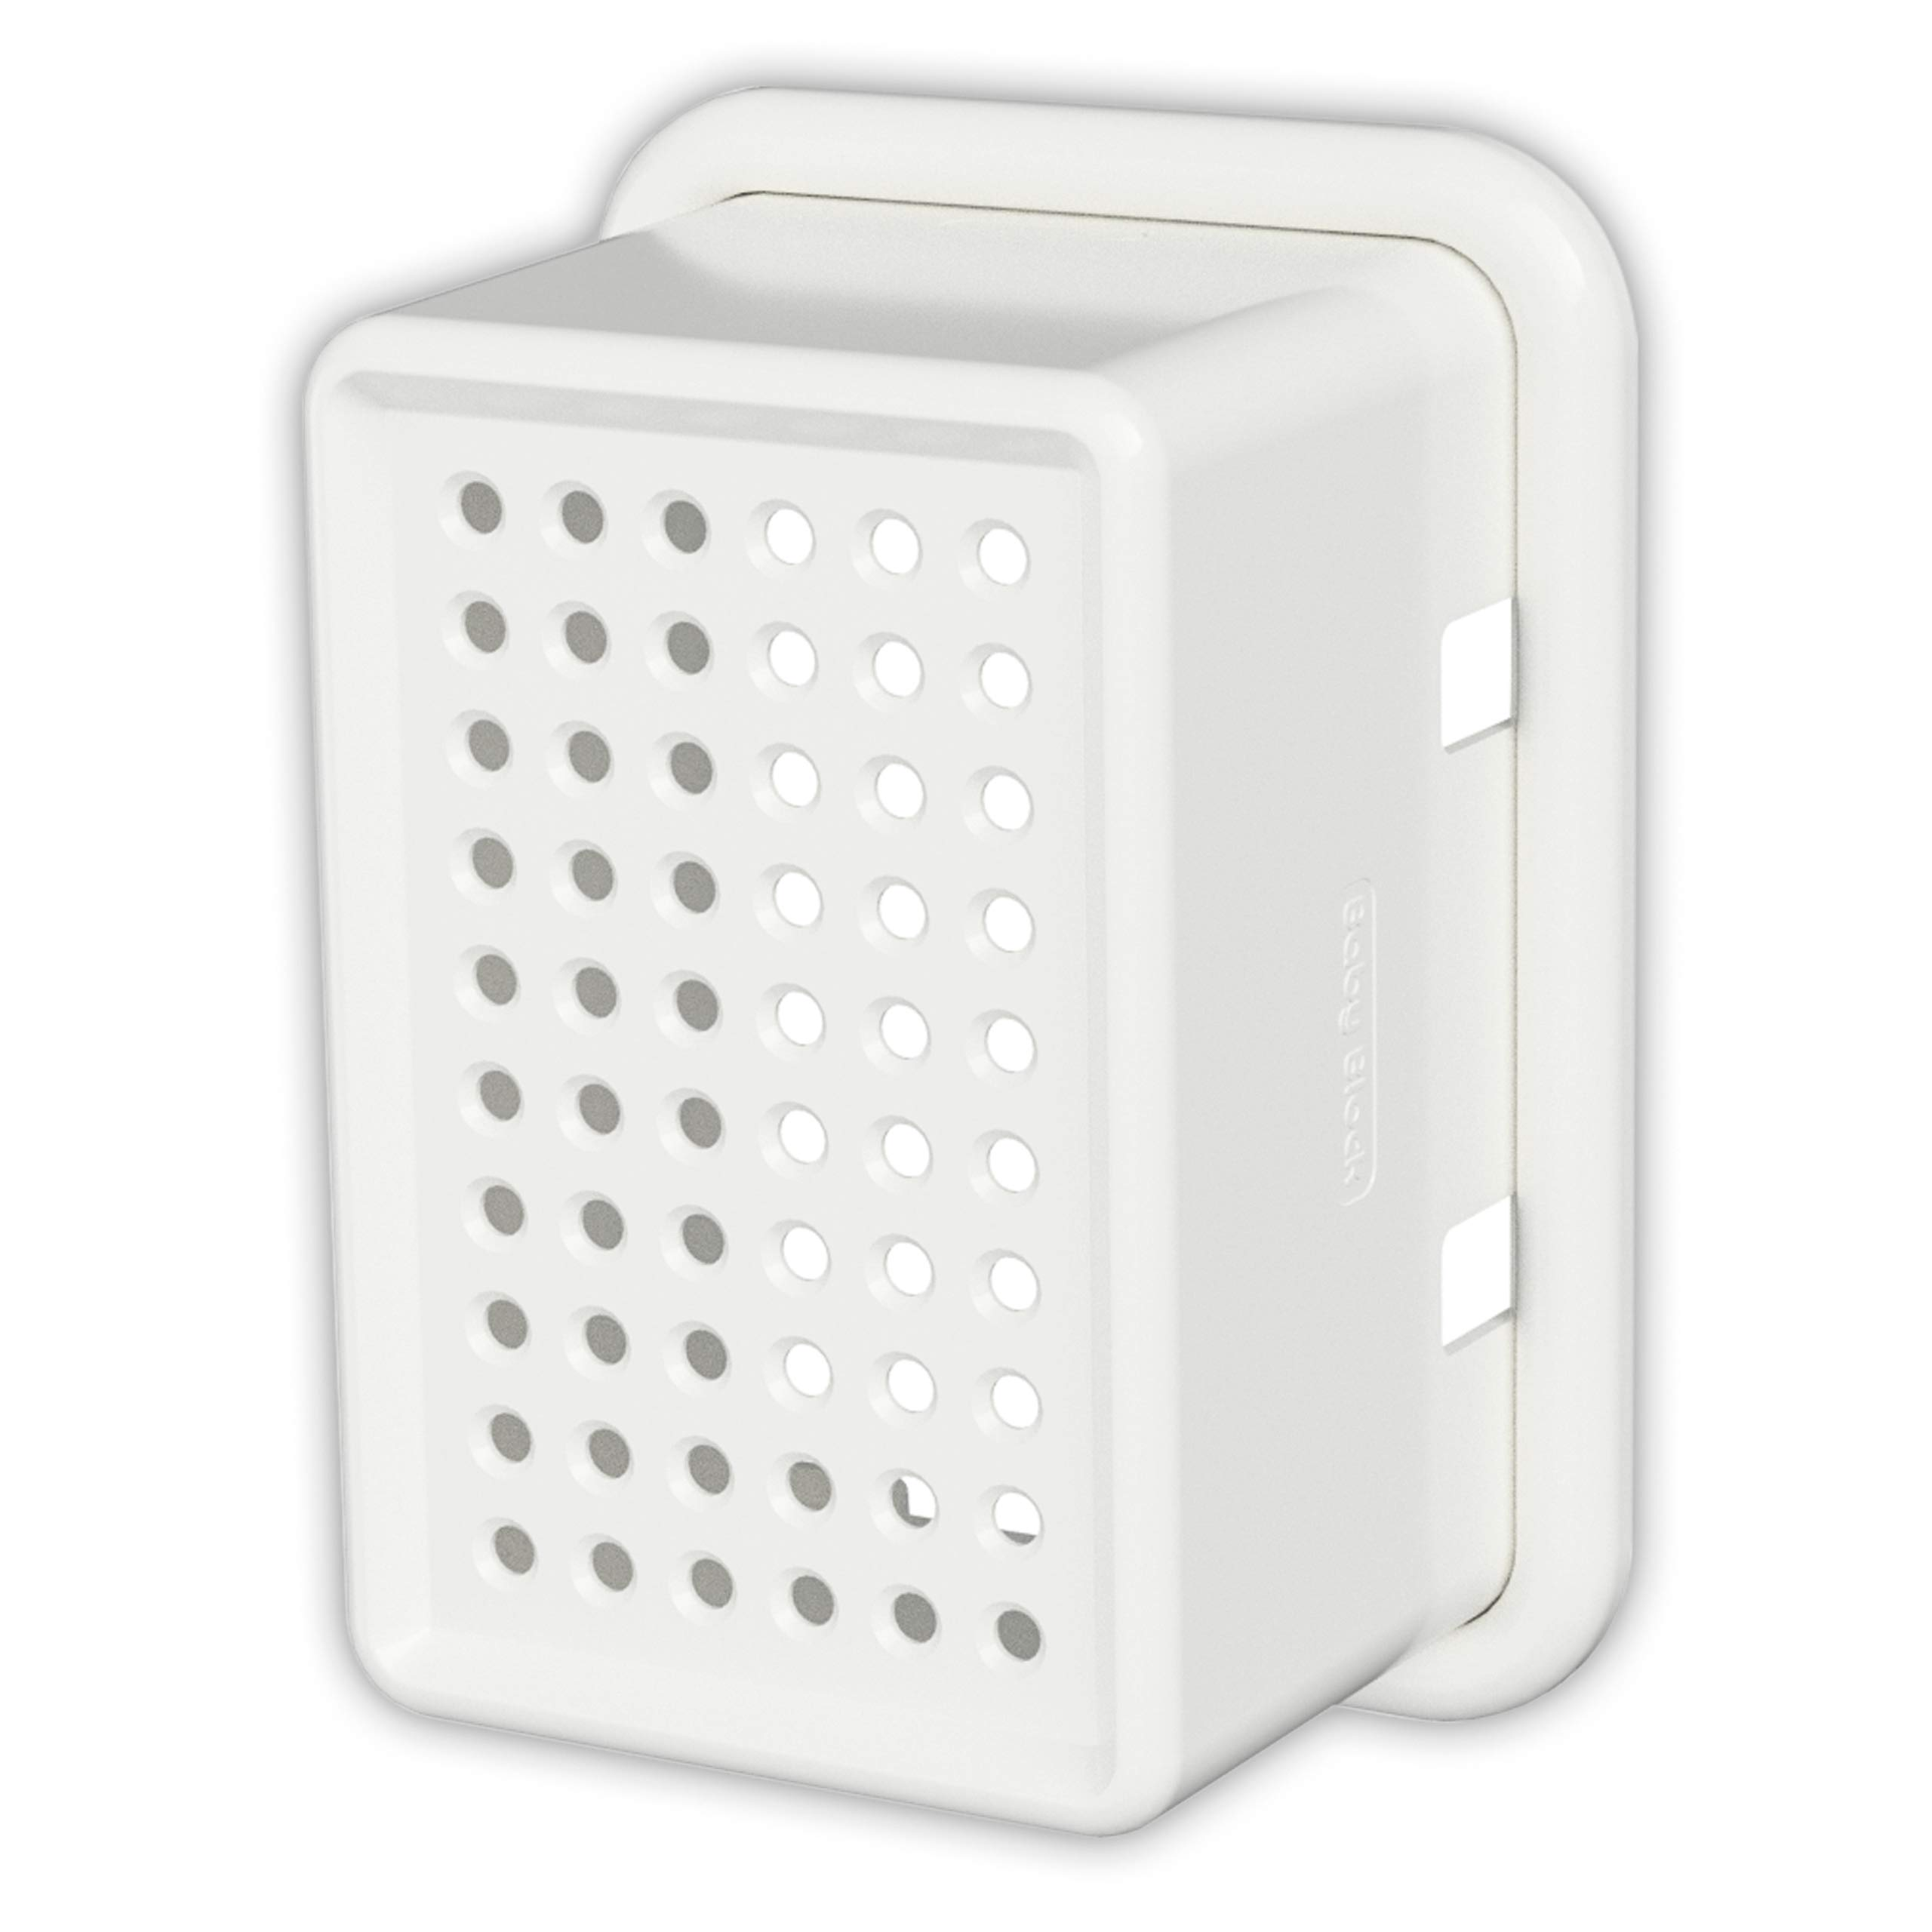 New: Universal Electric Outlet Cover | Child Safety & Baby Proofing | Protect Power Outlets, Wall Sockets and Plugs